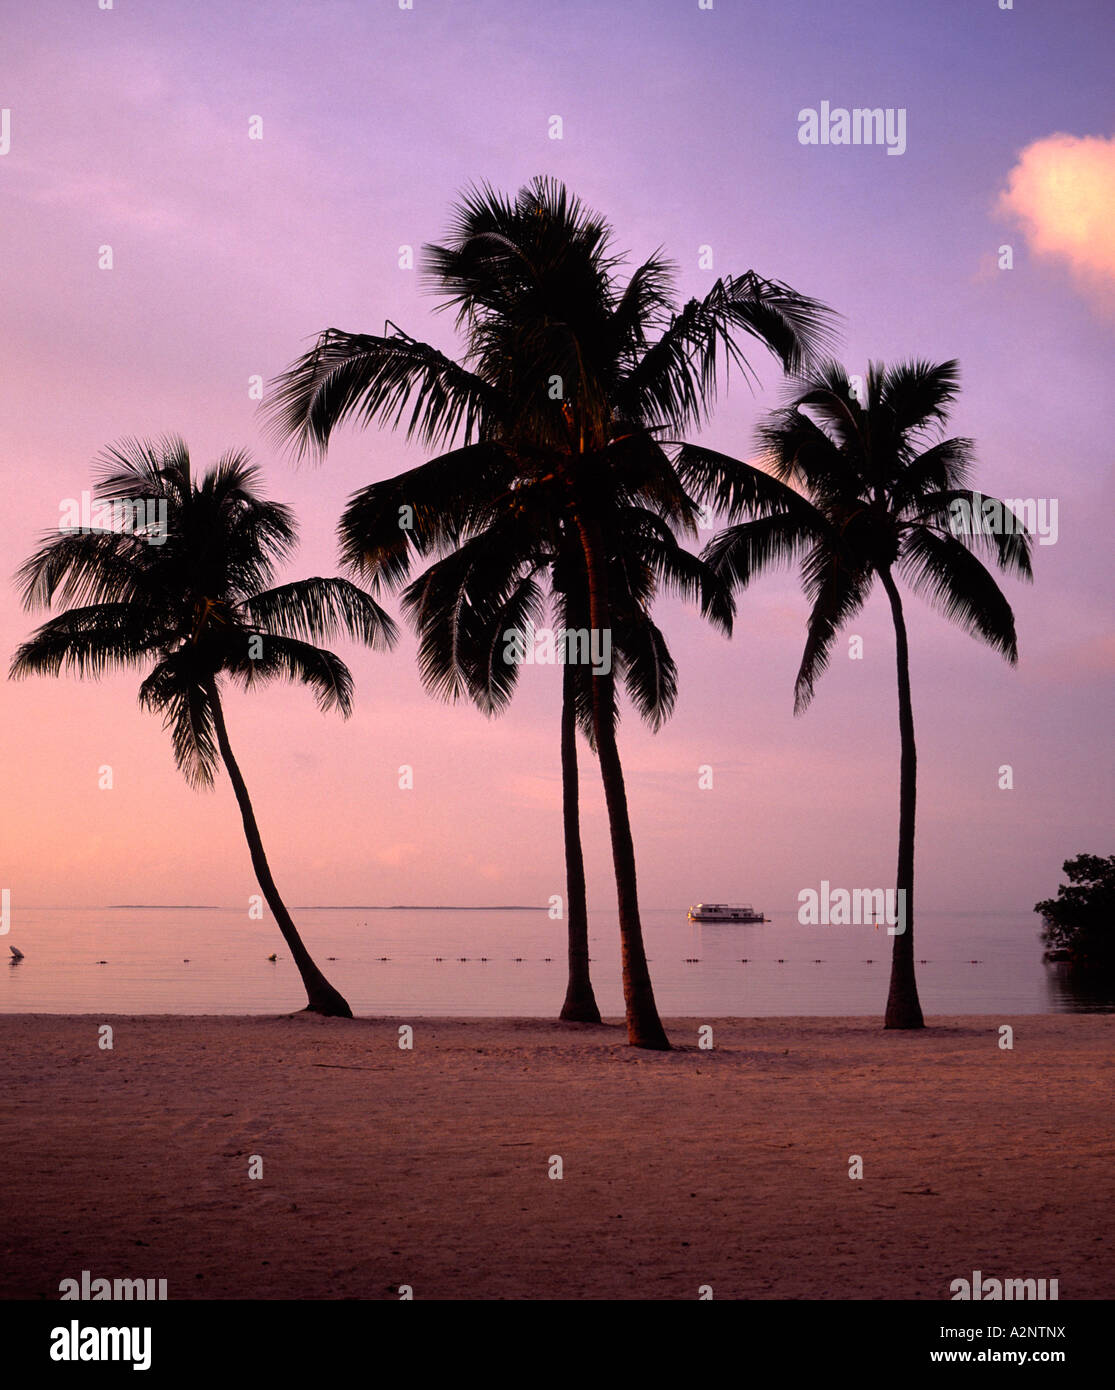 four coconut Palms sillouetted against setting sun sky on a beach in Key Largo Florida USA - Stock Image